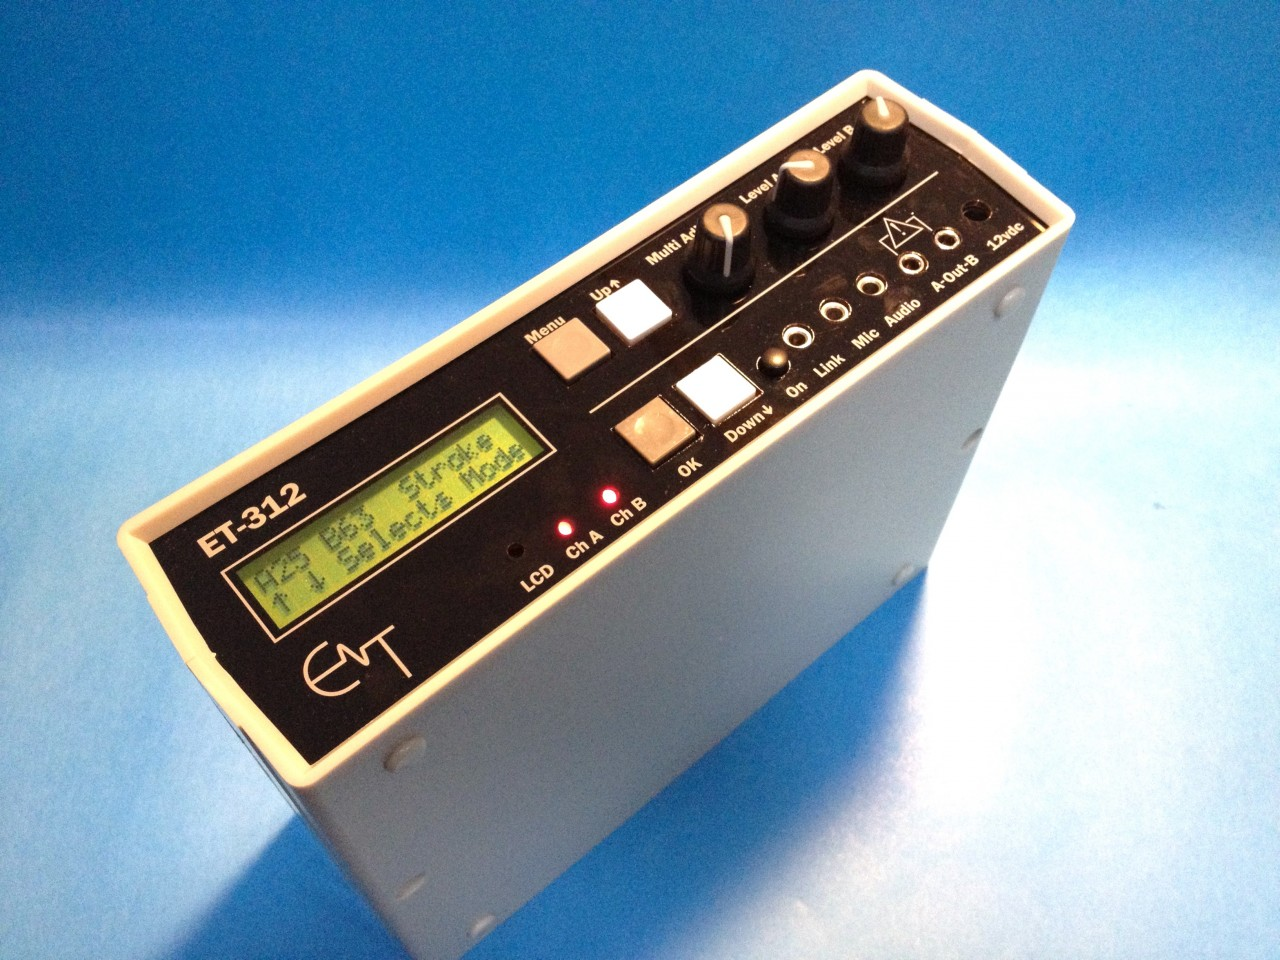 The Erostek ET312b estim electrosex power box. The ultimate in BDSM electro sex.